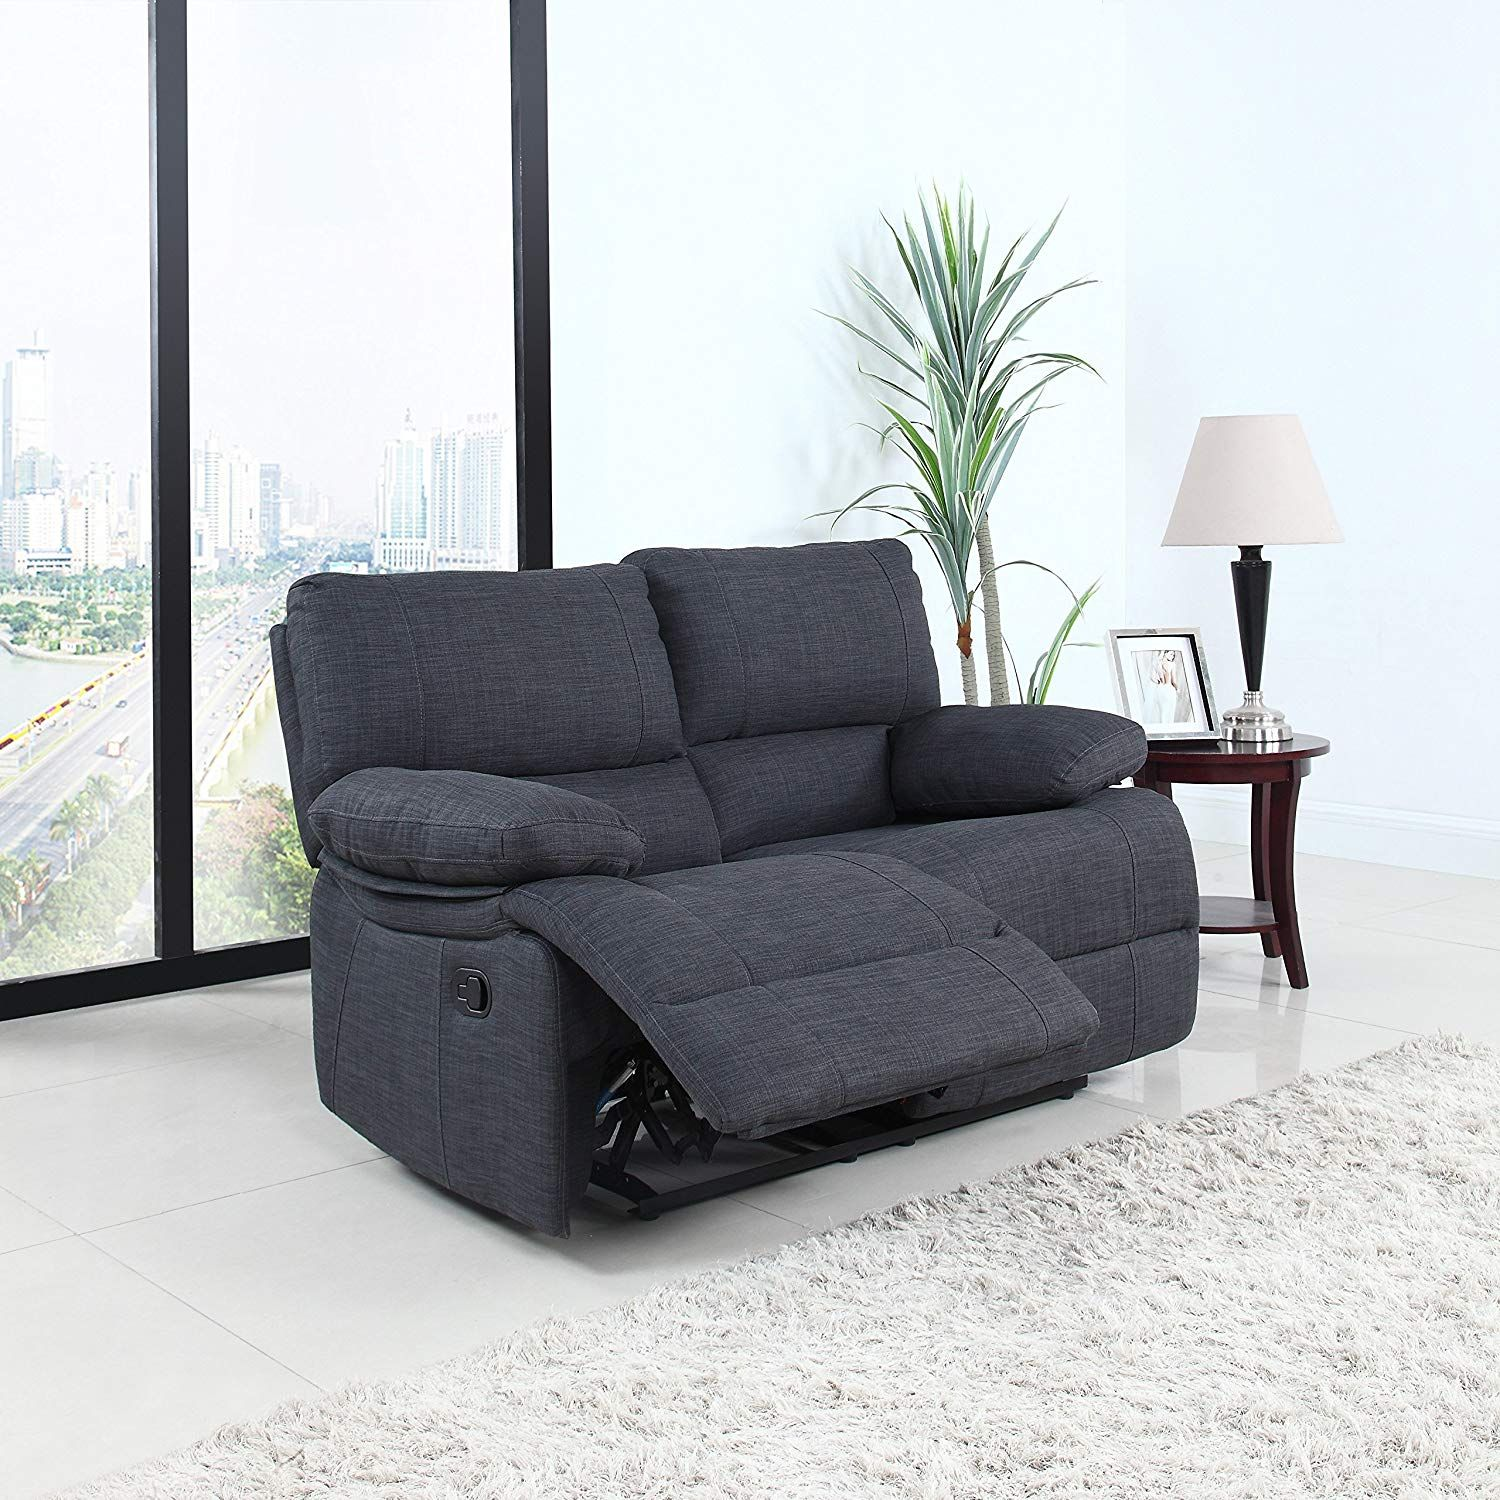 Style Spacez 25 Cheap Recliner Sofa Sets That Are Available Online Oversized Recliner Swivel Recliner Chairs Furniture